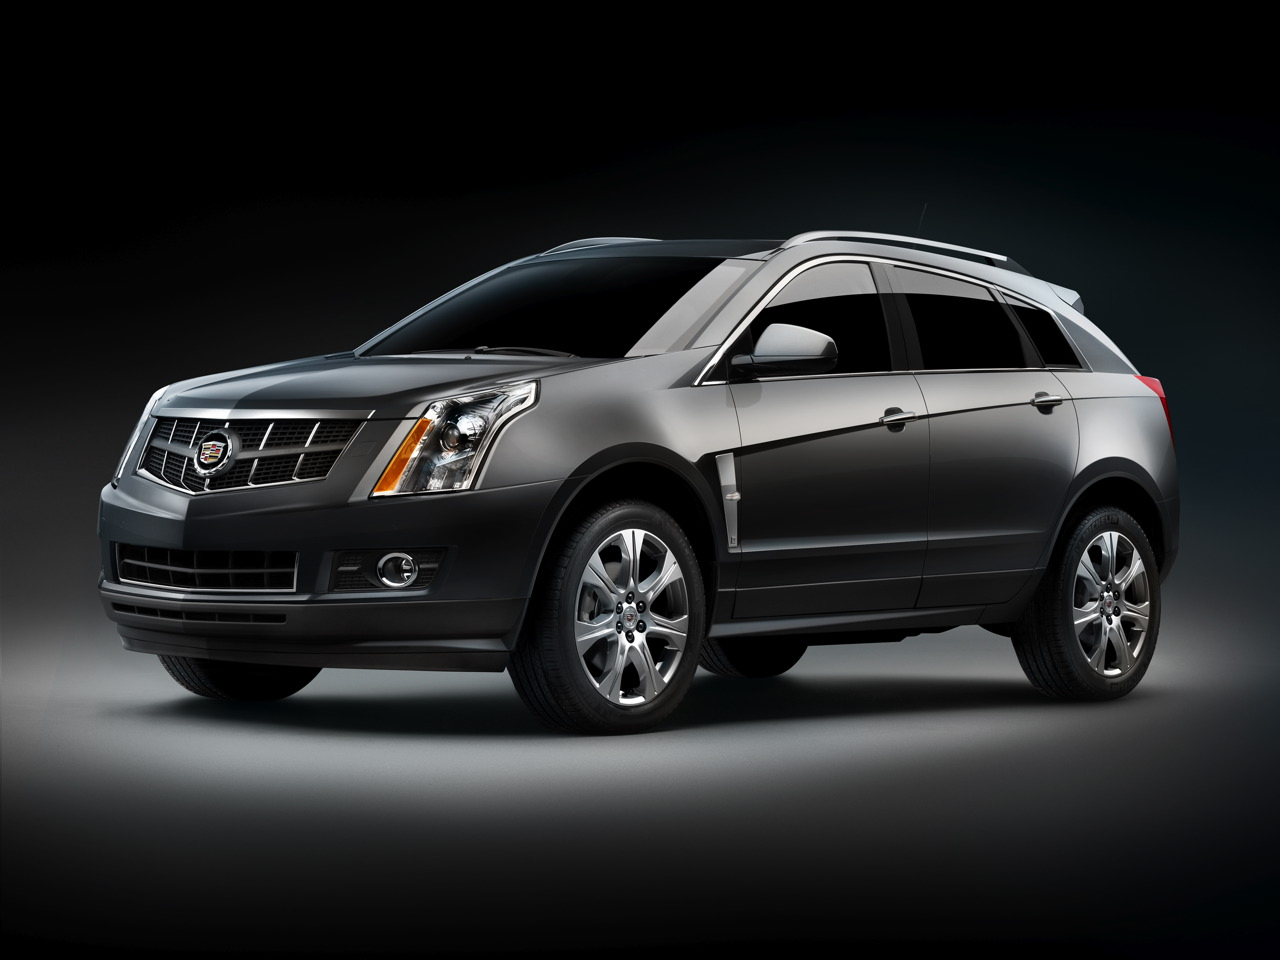 download keywords in images black wallpapers photos side cadillac srx hd color view